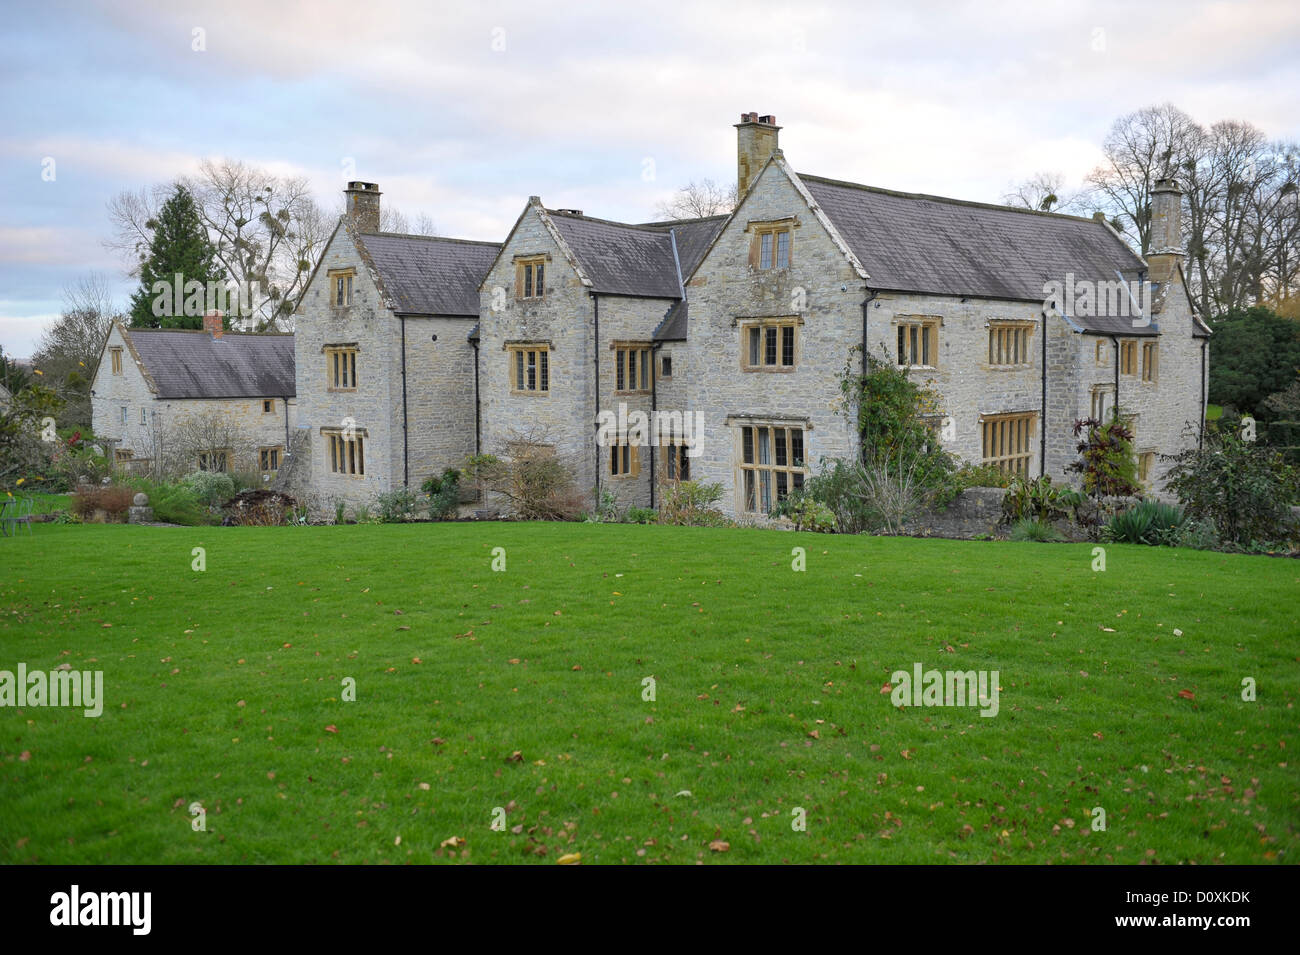 A rural country house in the English countryside that includes architectural features and grounds - Stock Image